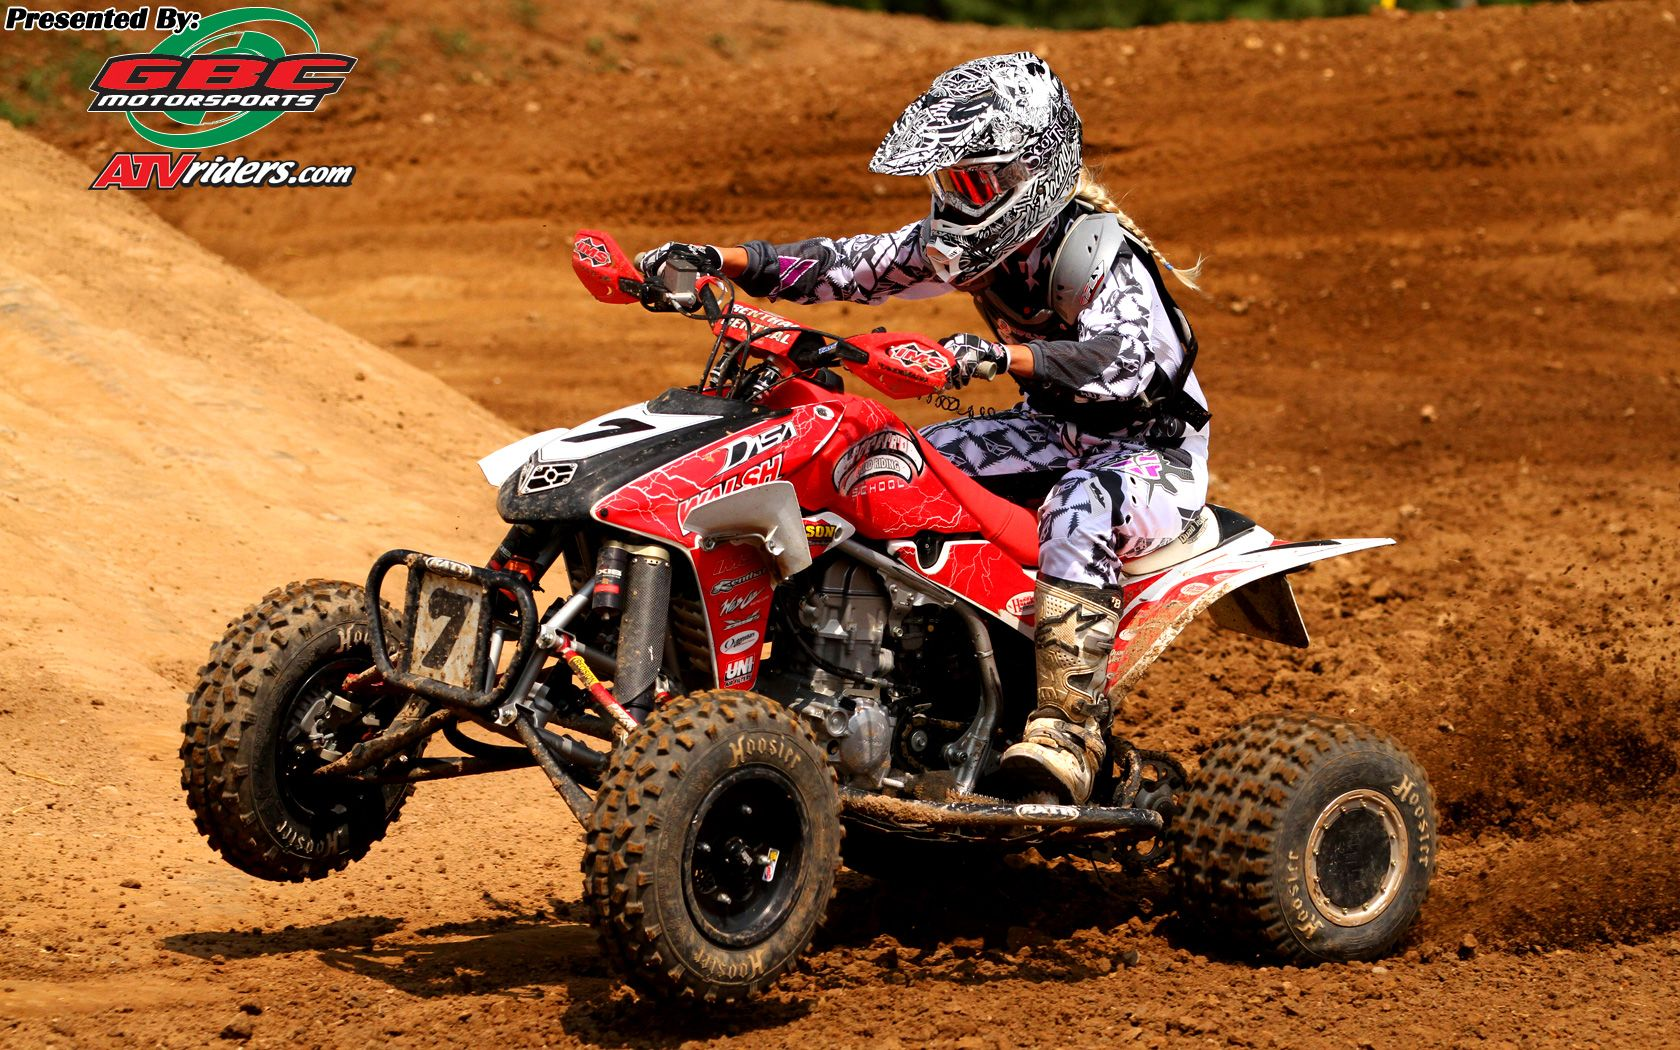 Pin By Amb Wallpapers On Atv Race Atv Towing Fifth Wheel Hitch